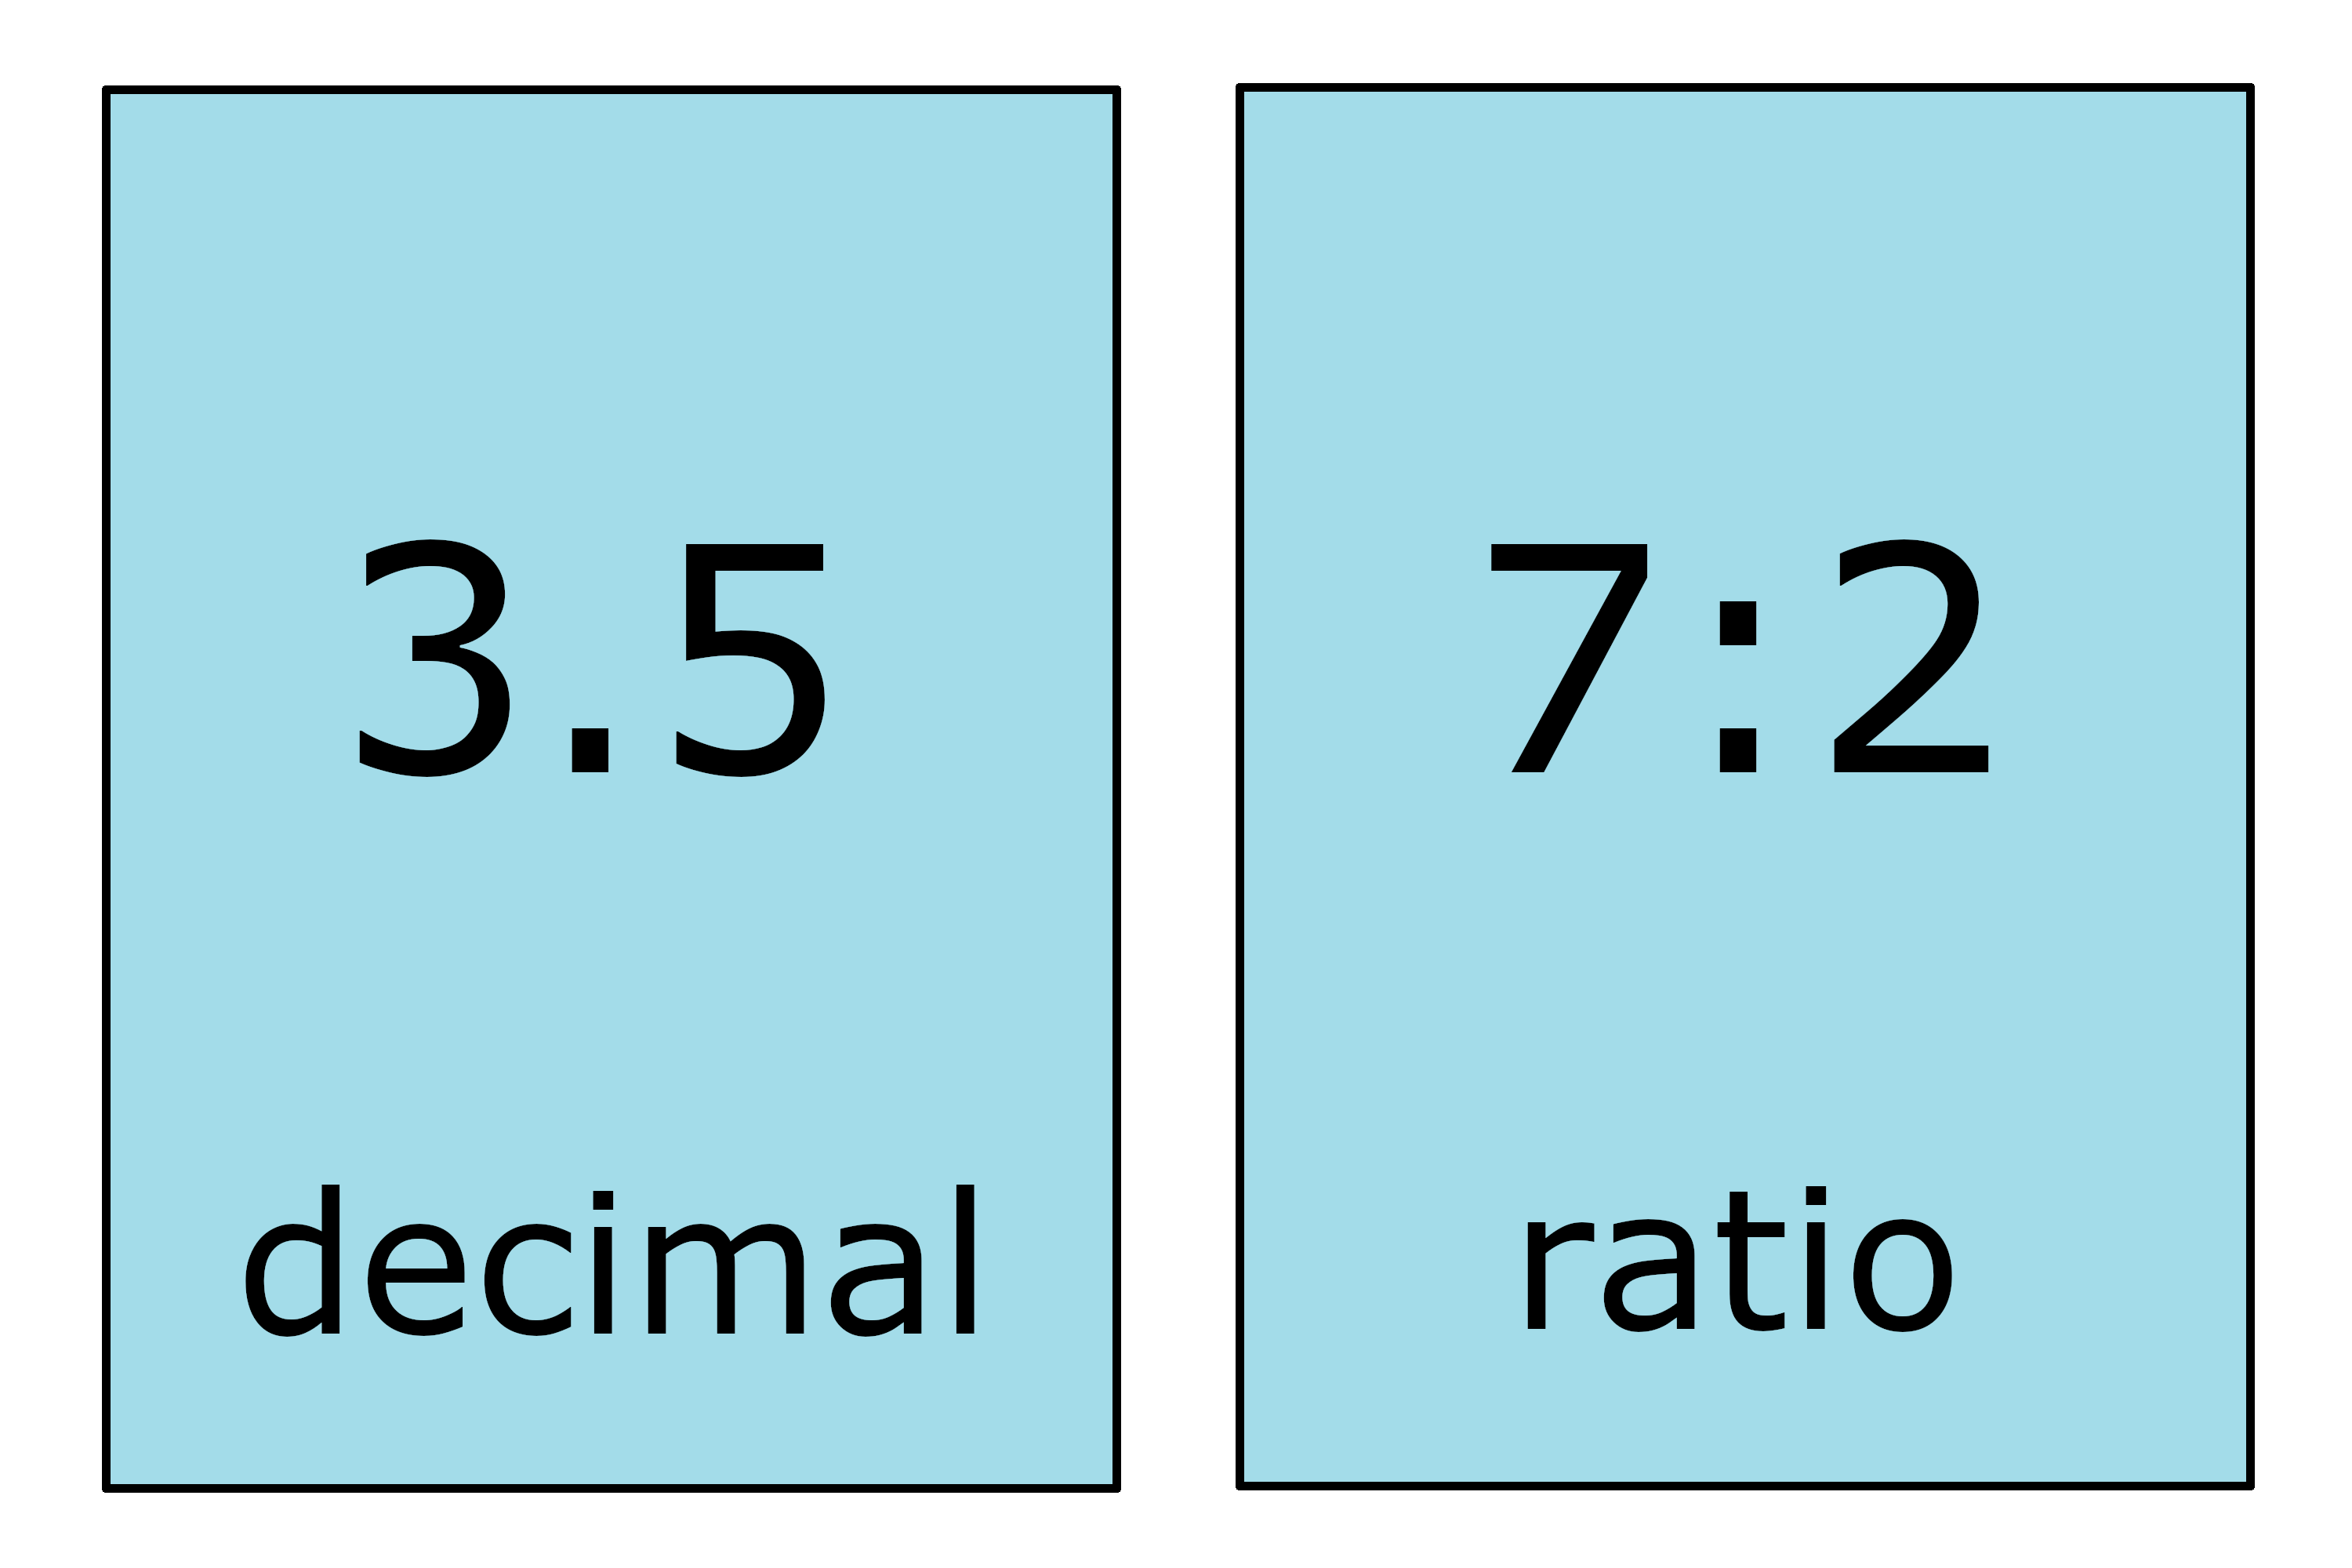 simplest form calculator ratio  Decimal to Ratio Calculator - Inch Calculator